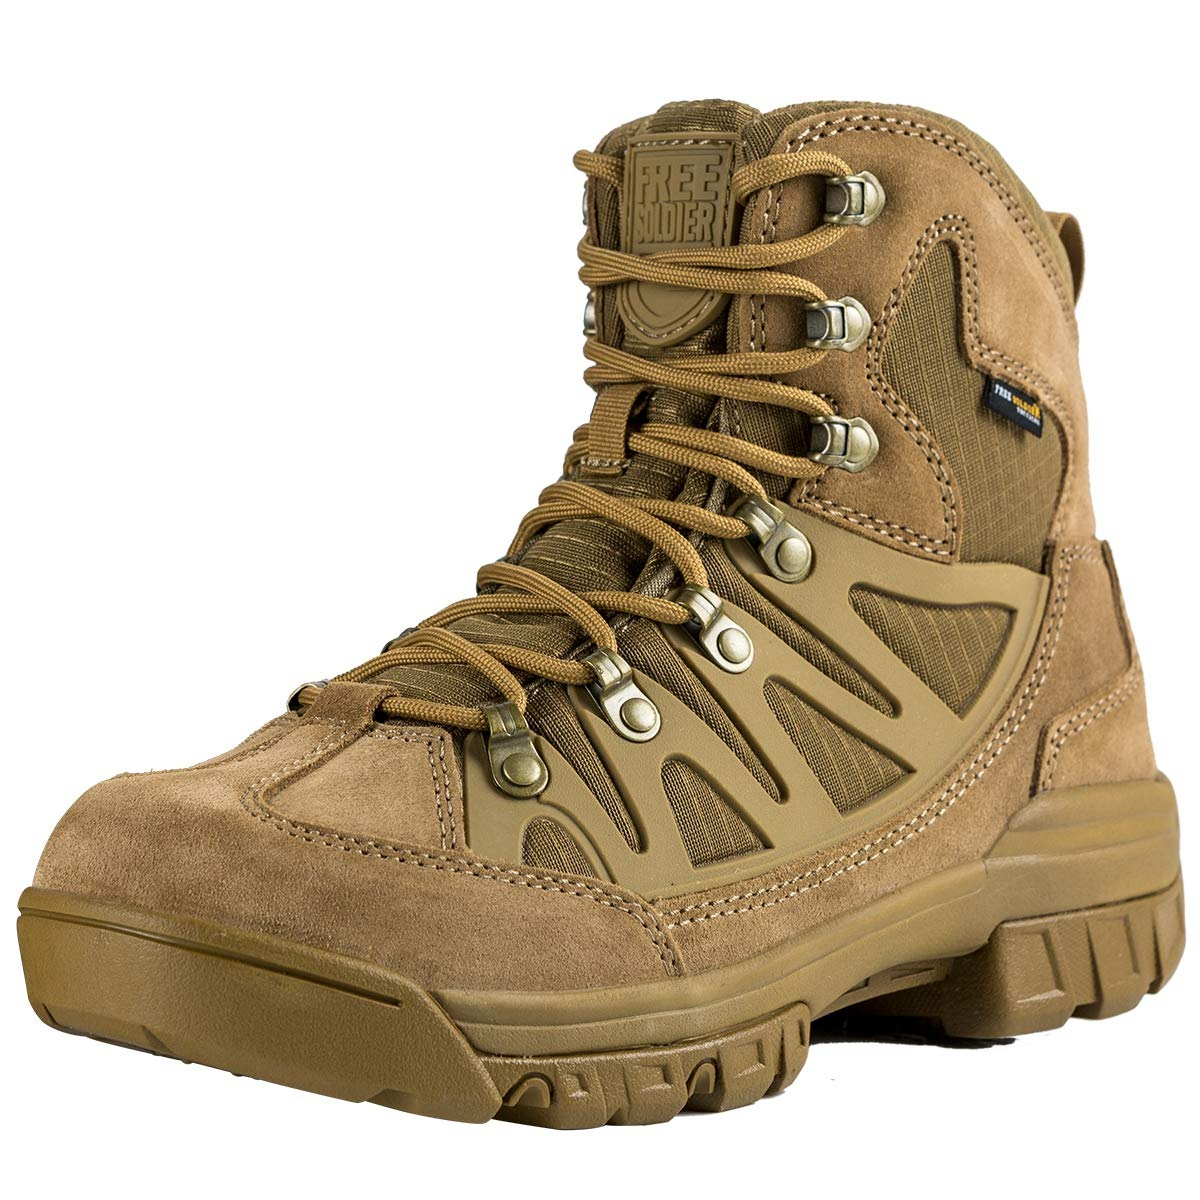 FREE SOLDIER Outdoor Military Tactical Ankle Boots